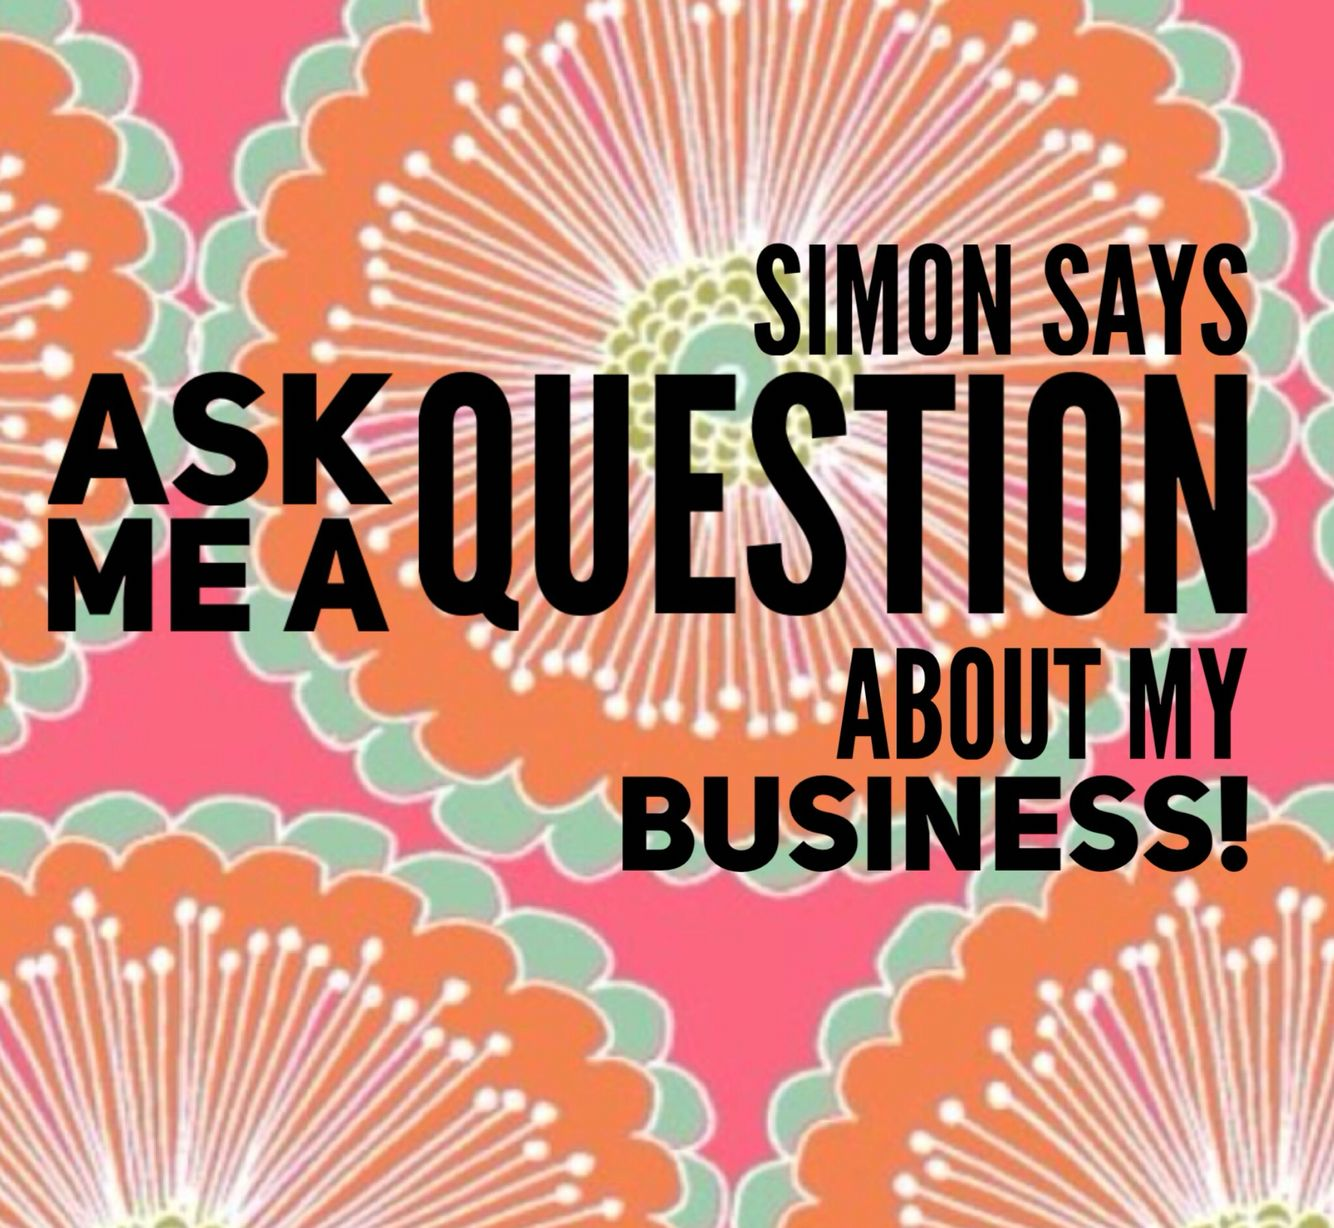 Simon says direct sales game … Facebook party games